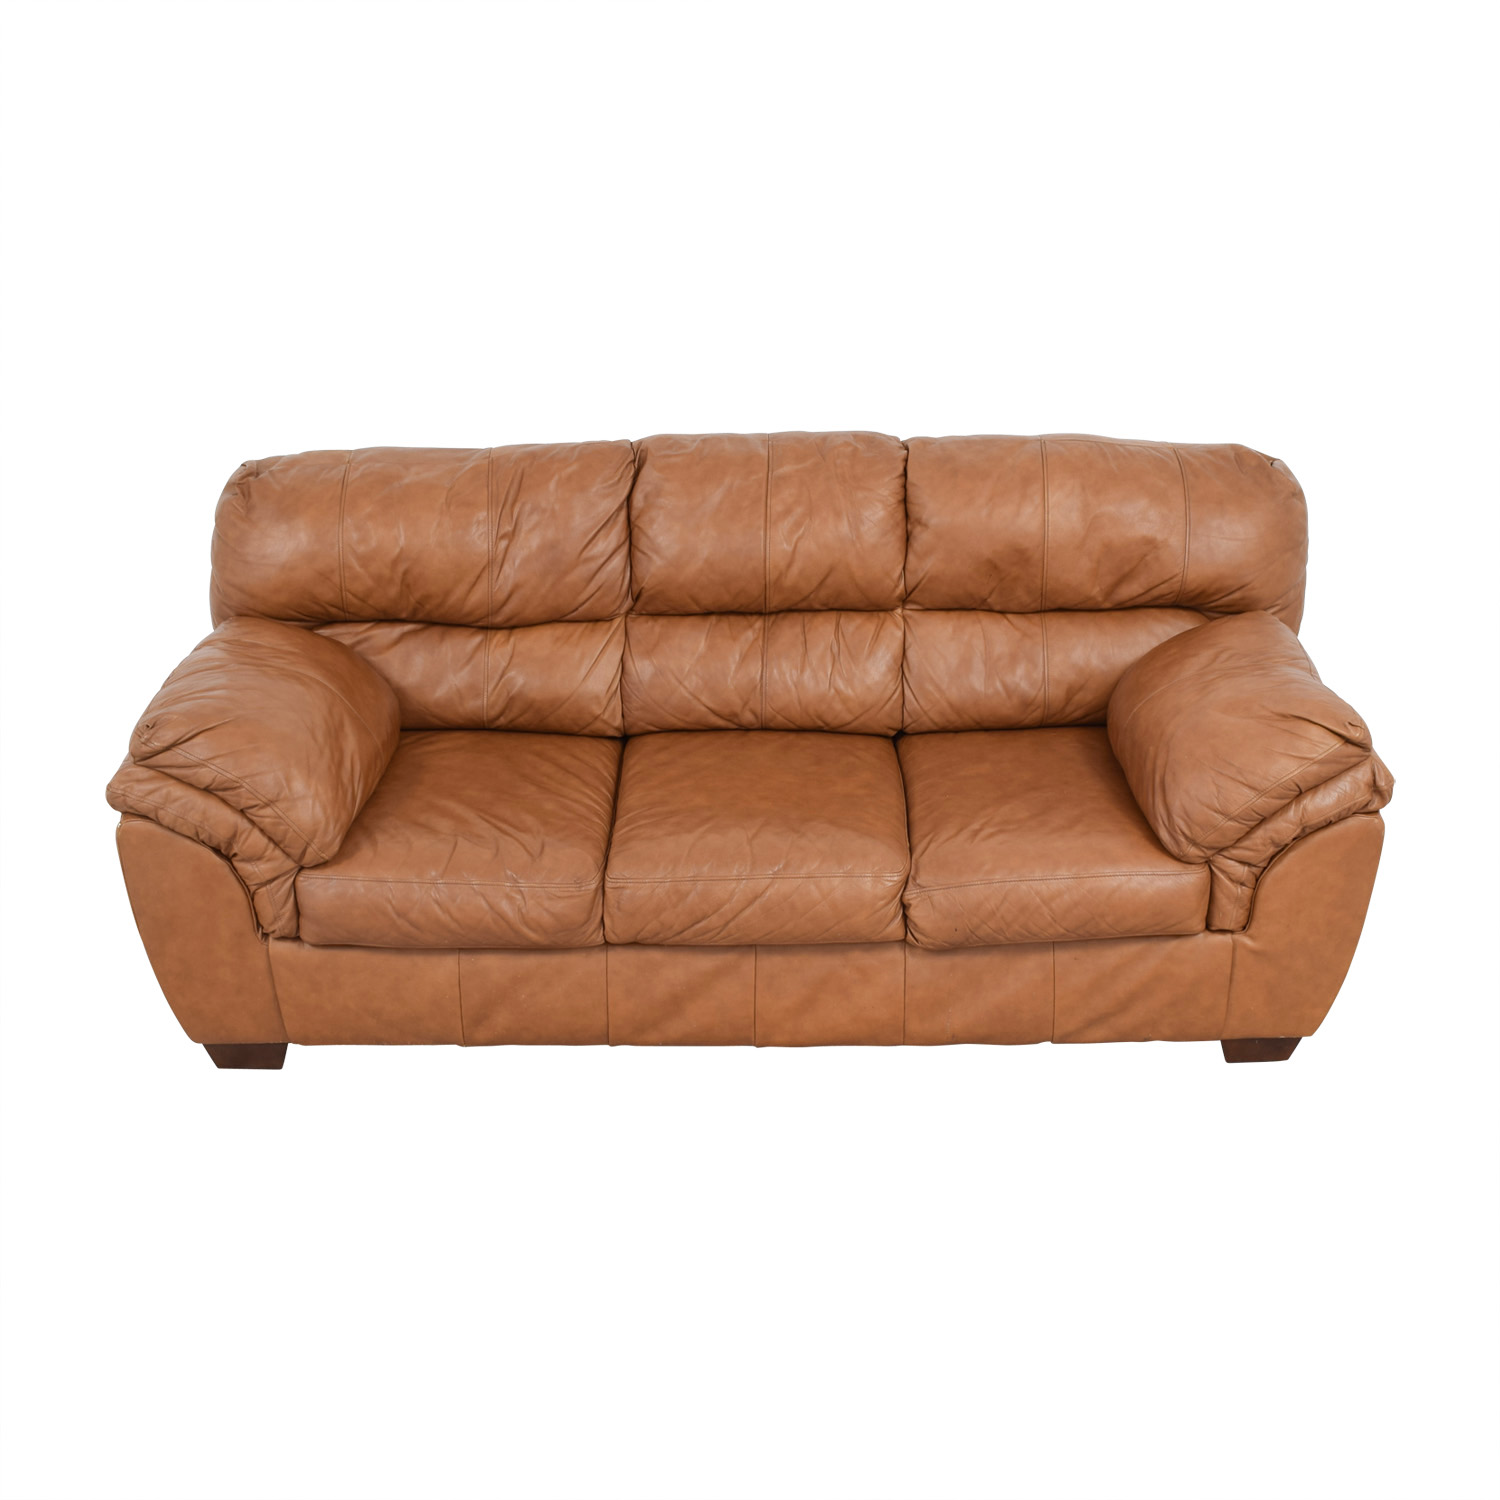 Paprika Leather Three-Cushion Sofa / Classic Sofas